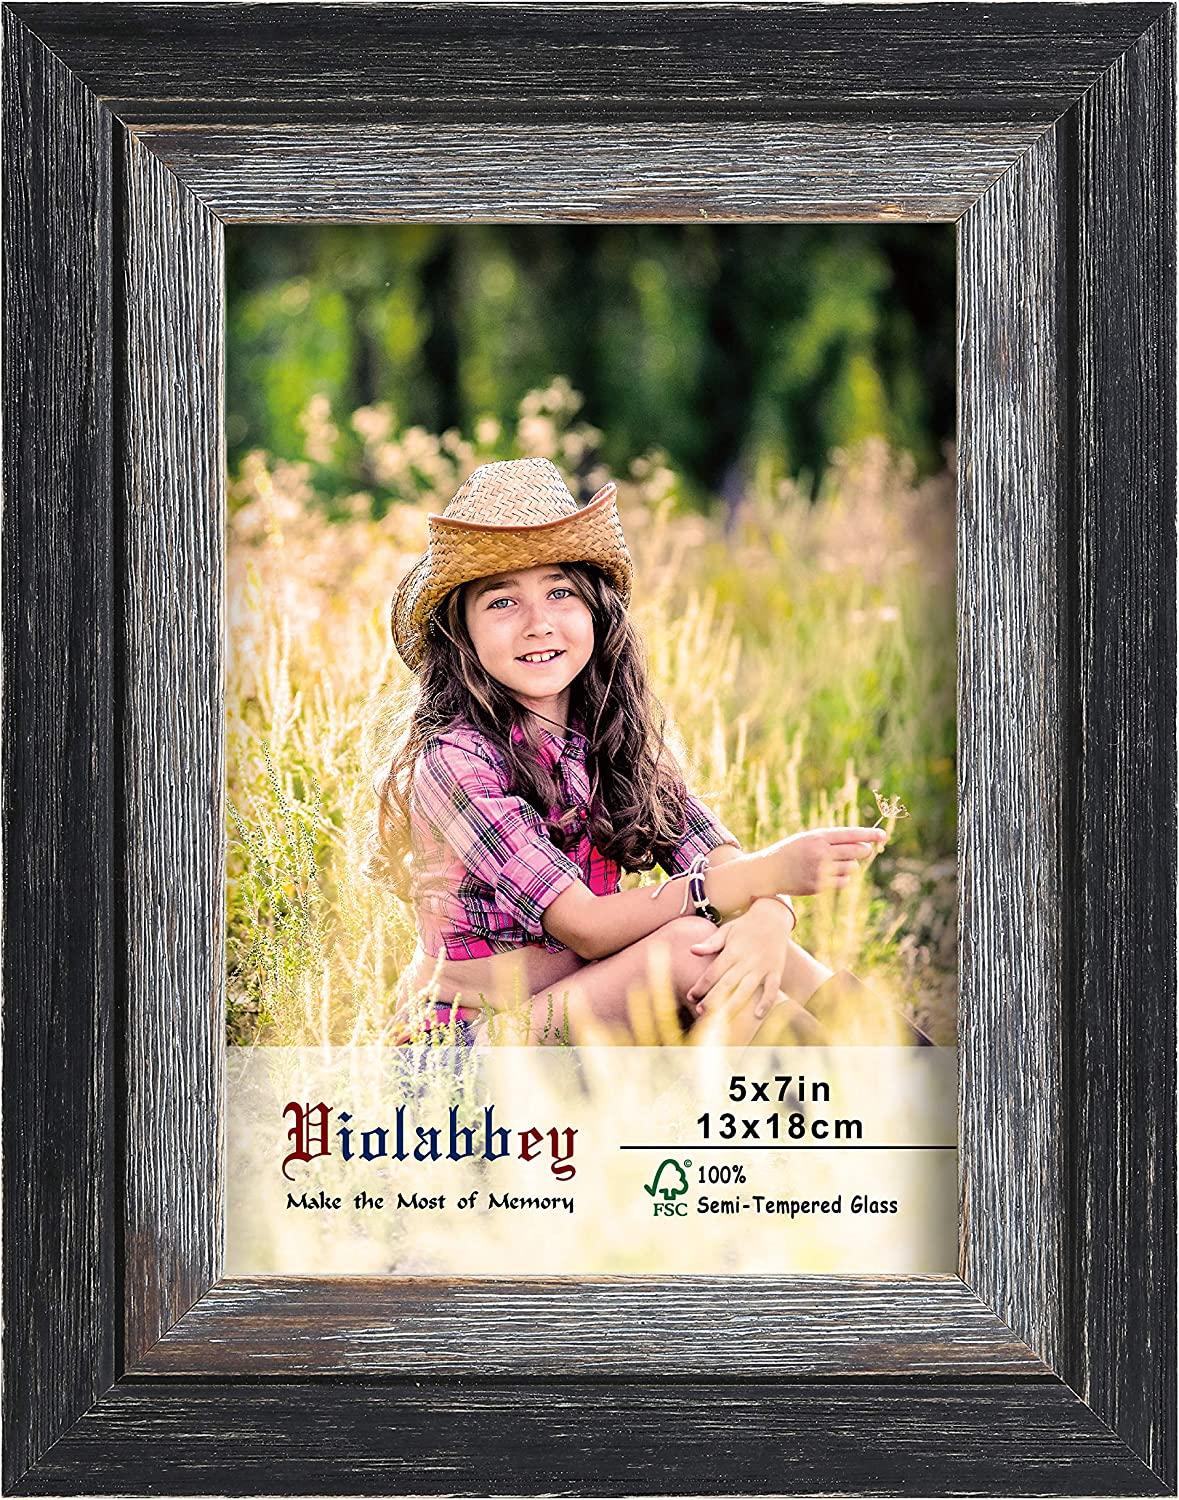 Violabbey 5x7 Picture Frames, BlackD-grey Solid Wood Frame of R